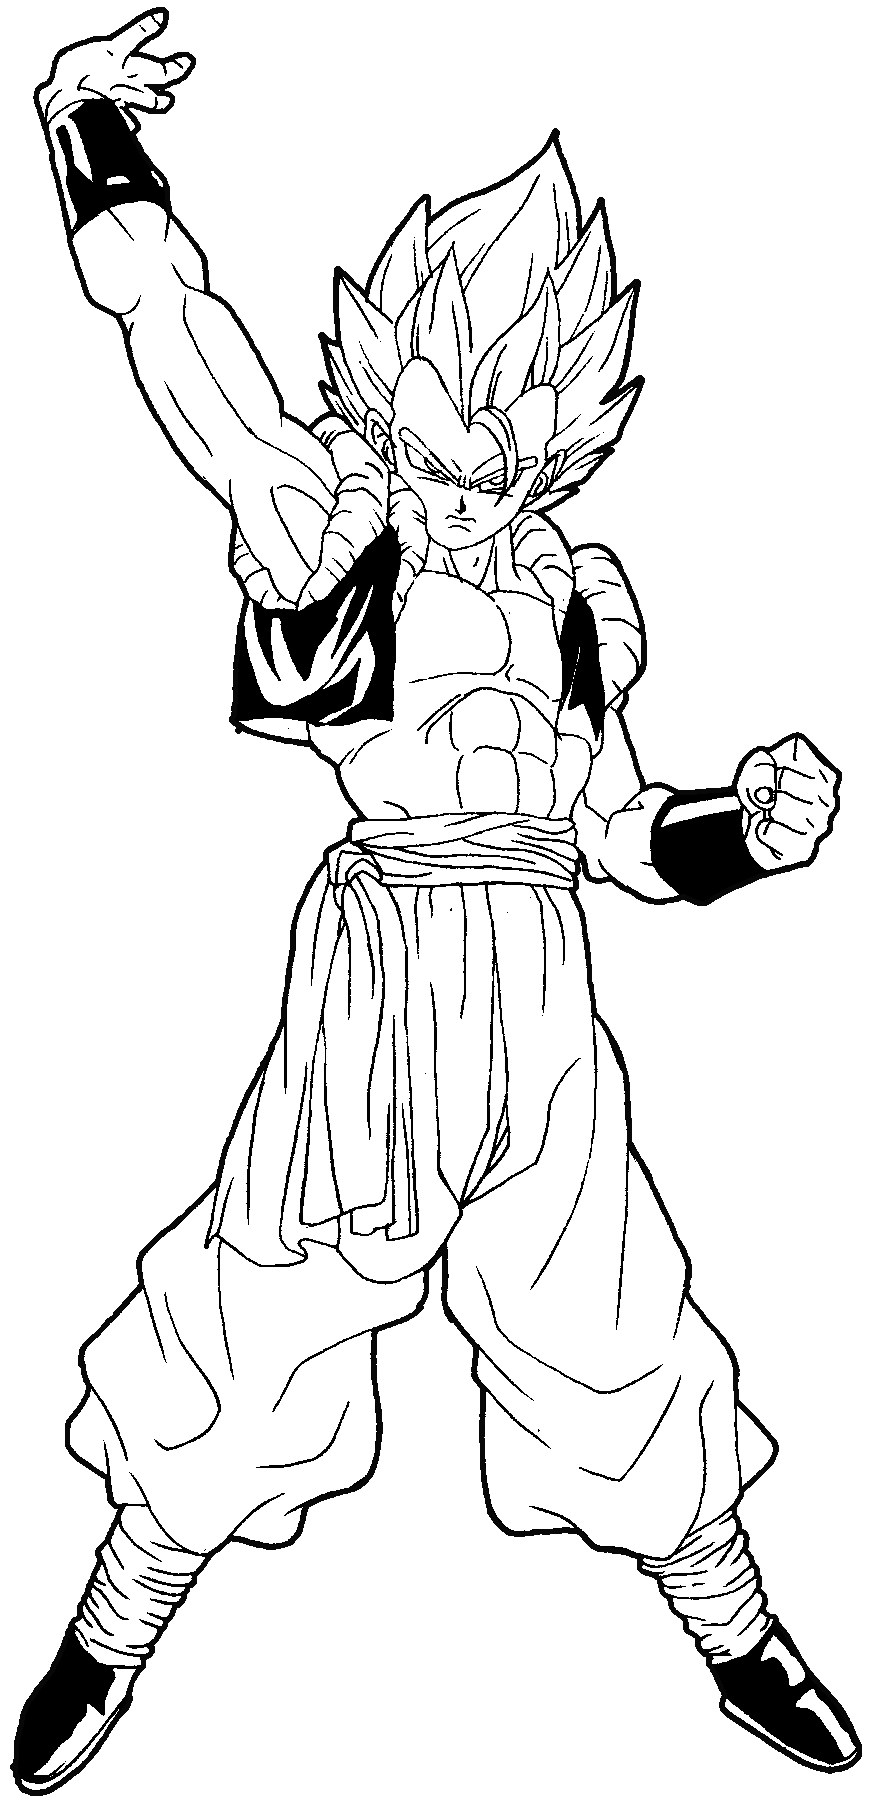 876x1810 How To Draw Gogeta From Dragon Ball Z In Easy Steps Tutorial How